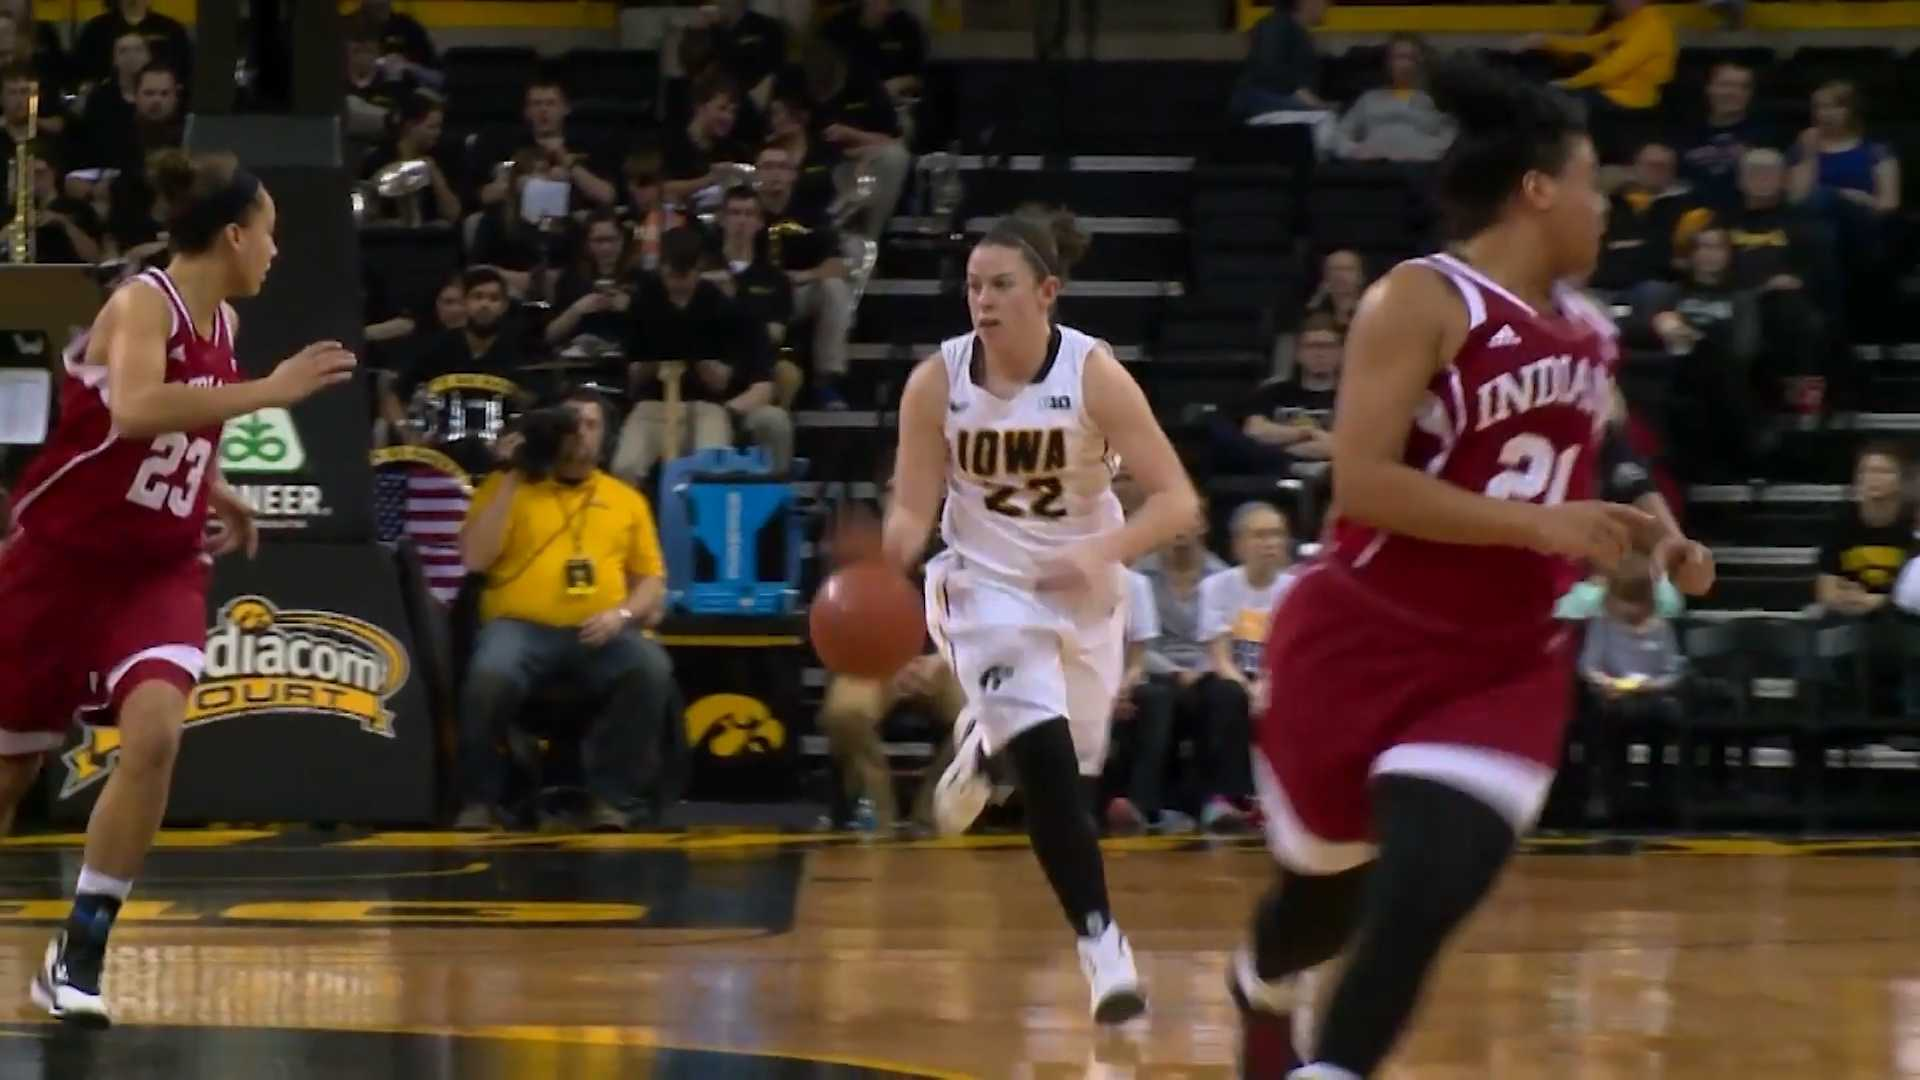 Iowa guard Samantha Logic bring the ball up the floor against Indiana.